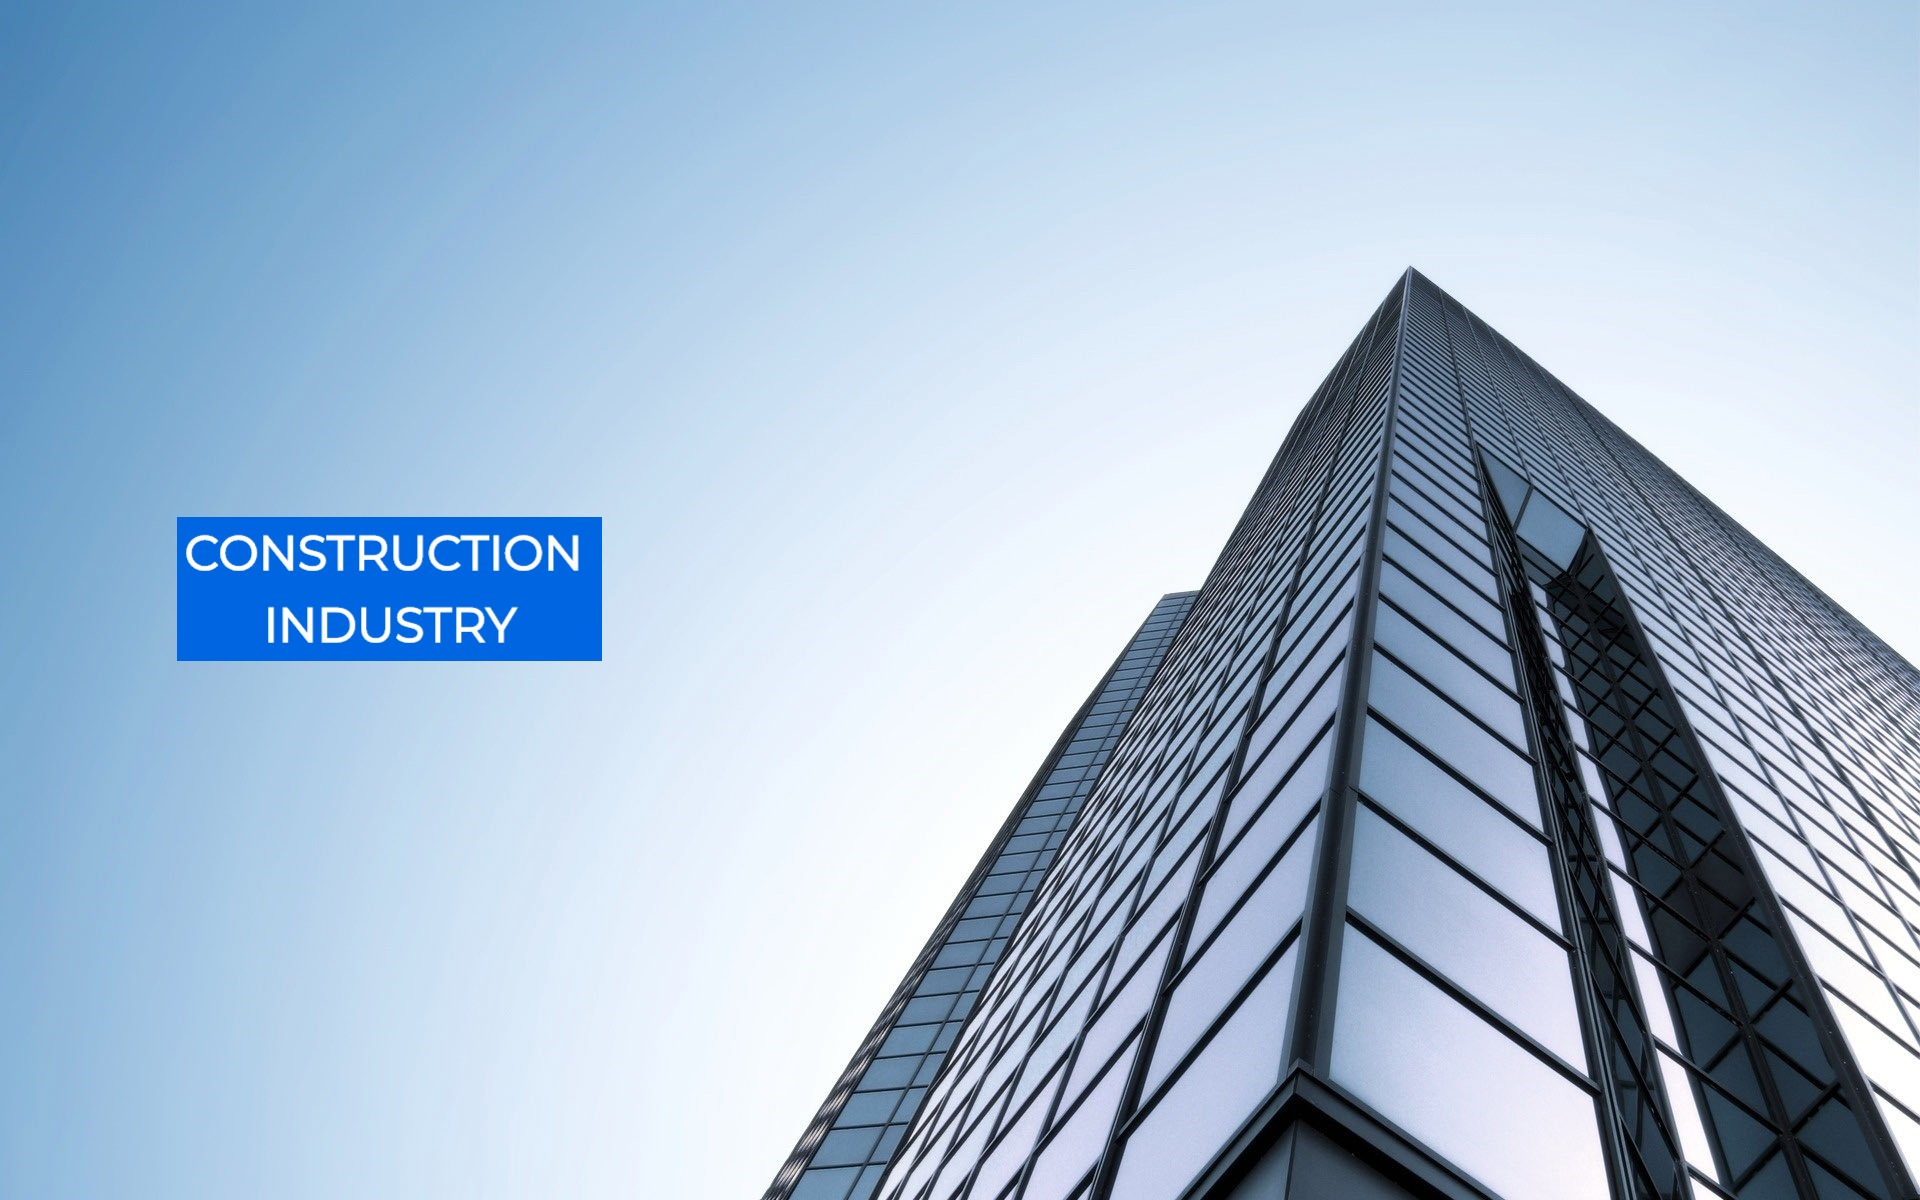 Construction Industry - Civil, Architectural, Building, Interior - High rise building at constructio